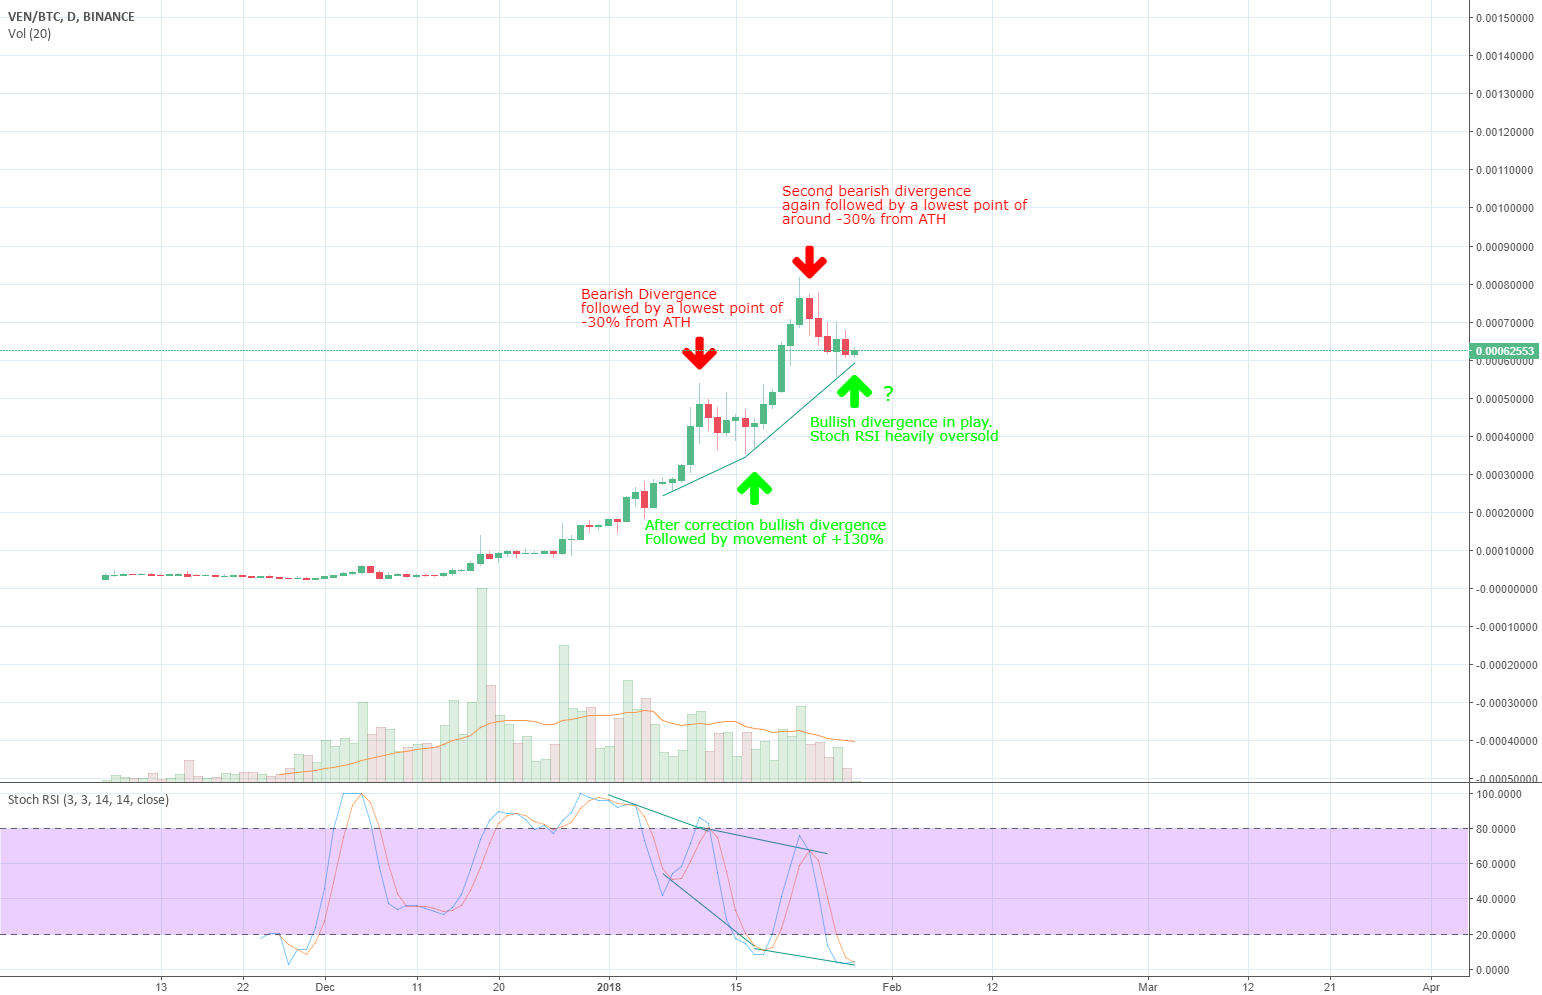 Bullish divergence in play after correction